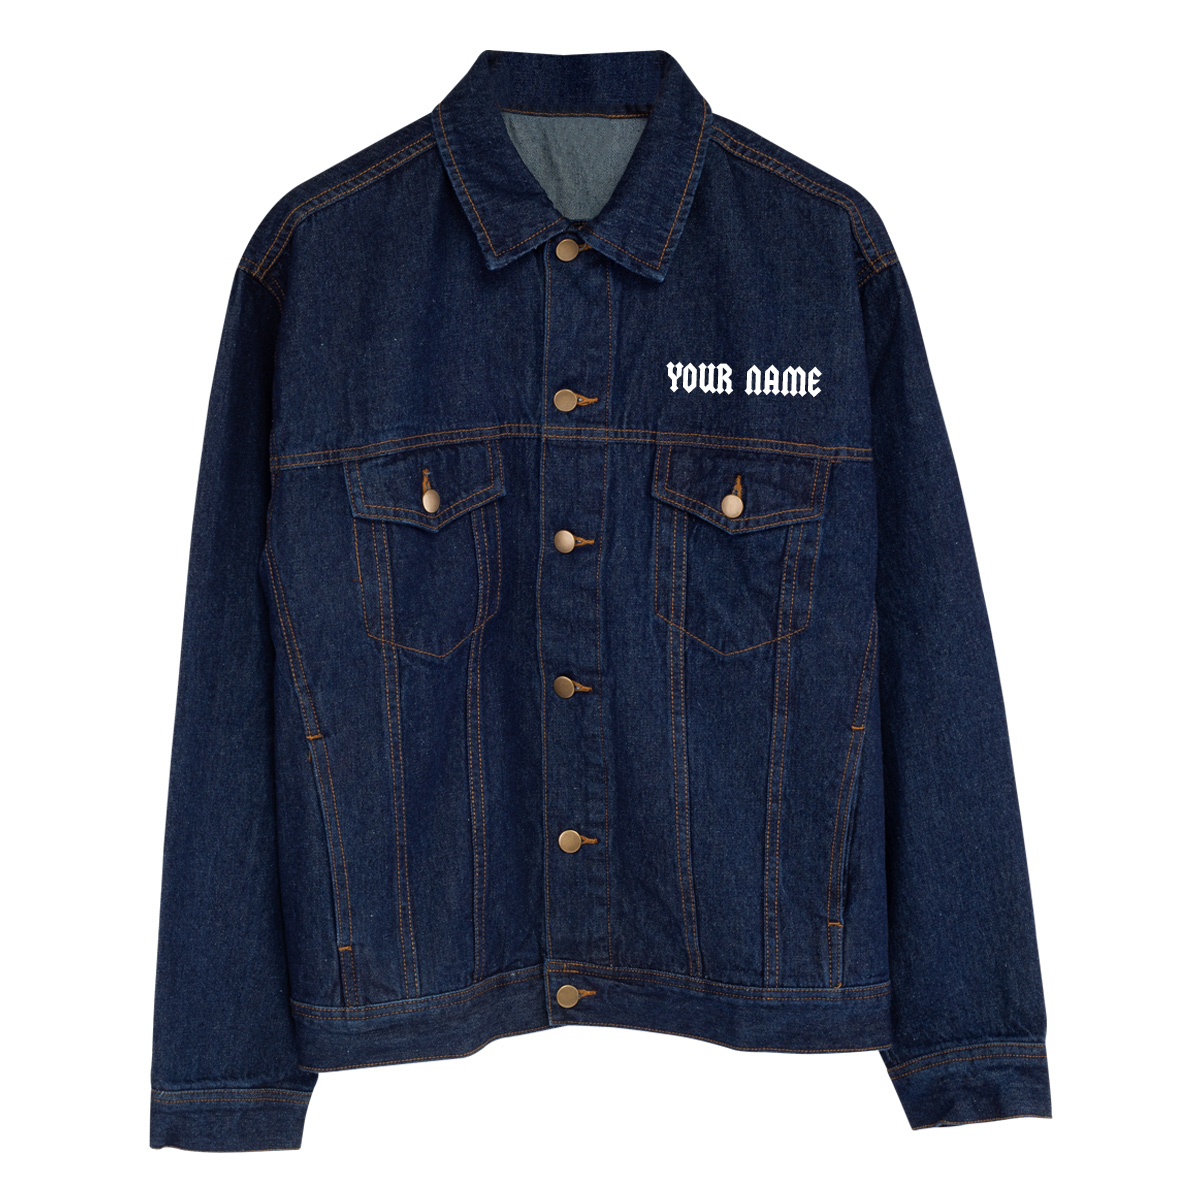 Highway To Hell Personalized Jean Jacket